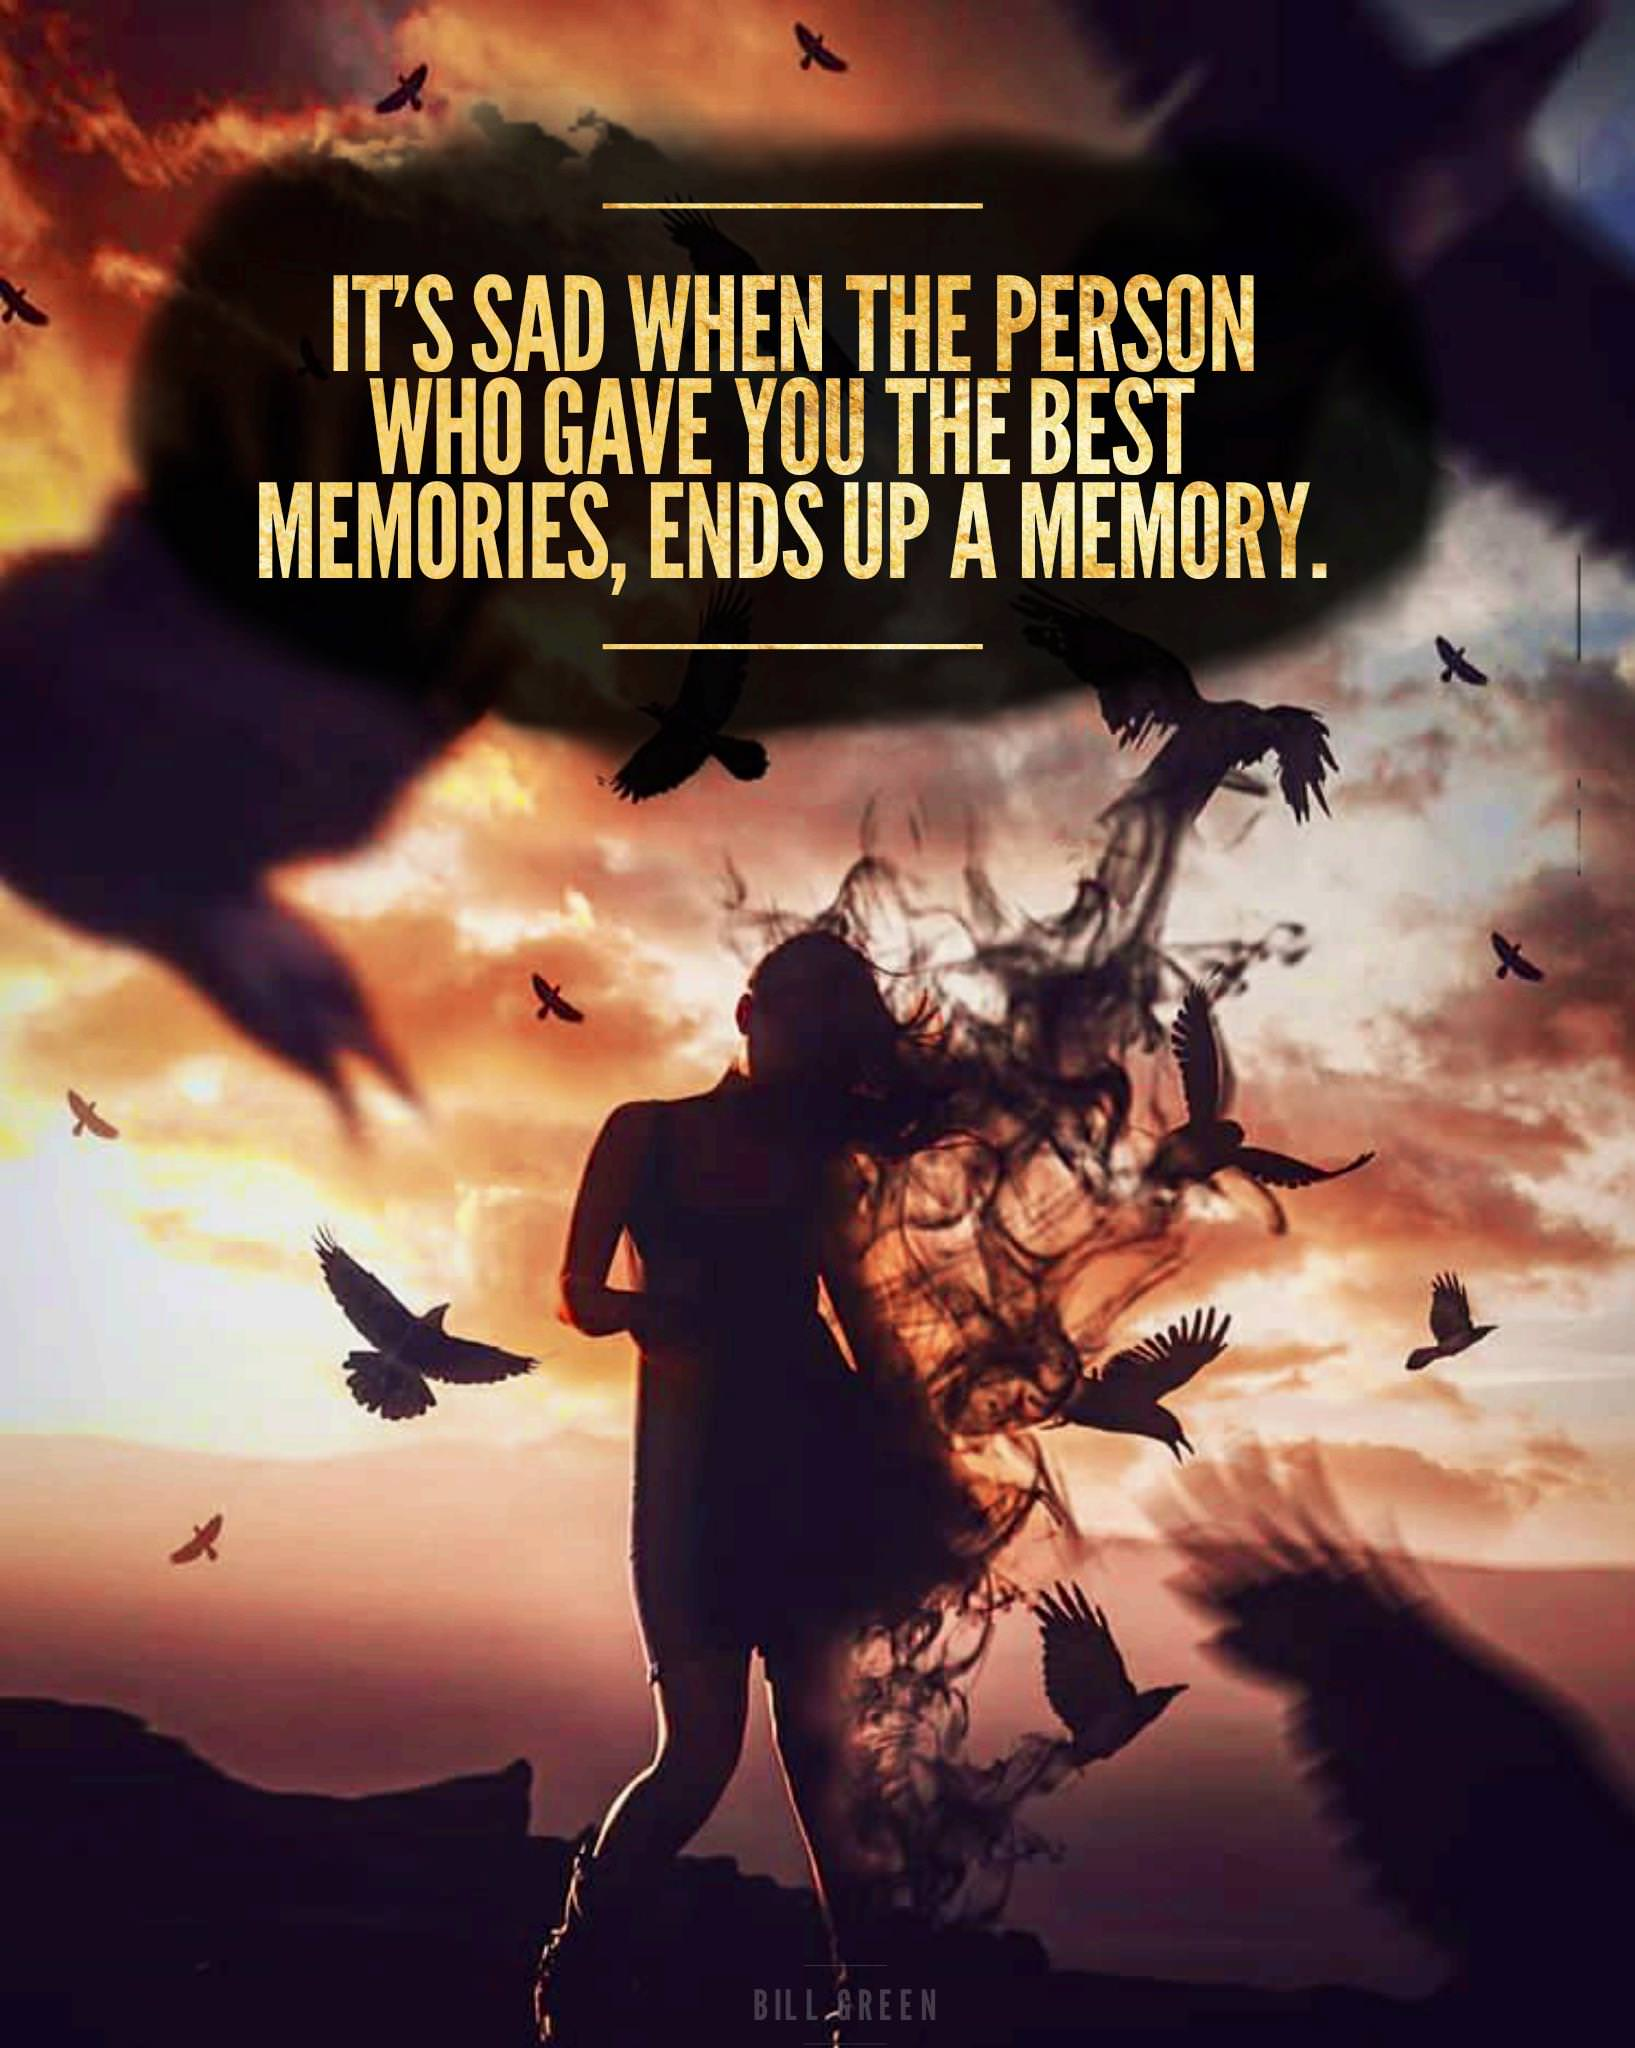 It's sad when person who gave you the best memories, end up a memory – Bill Green [1635X2048]